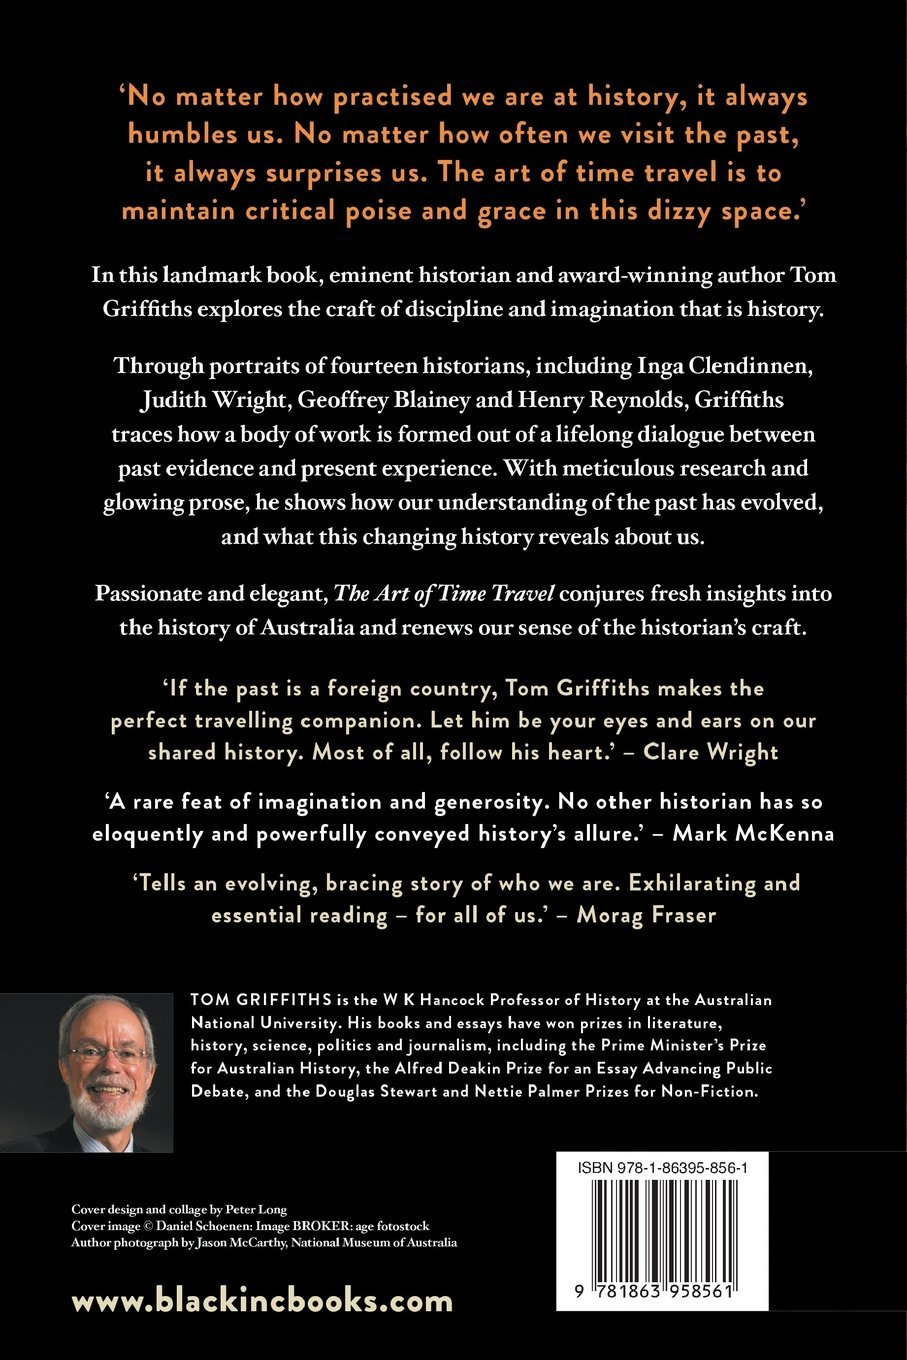 the art of time travel historians and their craft tom griffiths  the art of time travel historians and their craft tom griffiths 9781863958561 com books